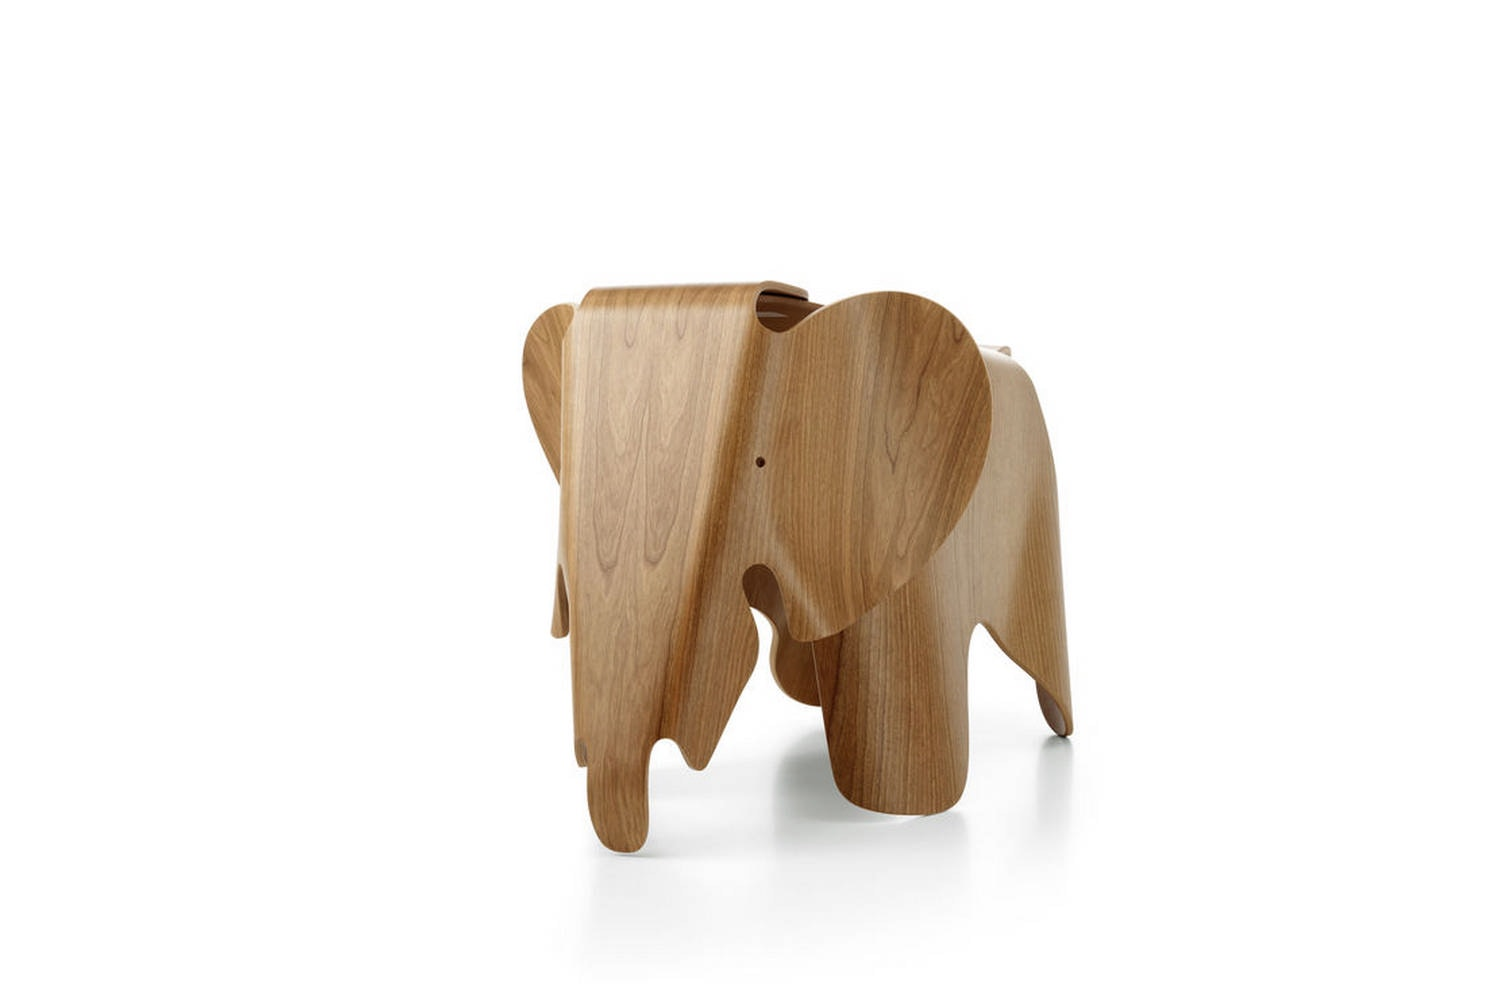 Eames Elephant Plywood by Charles & Ray Eames for Vitra